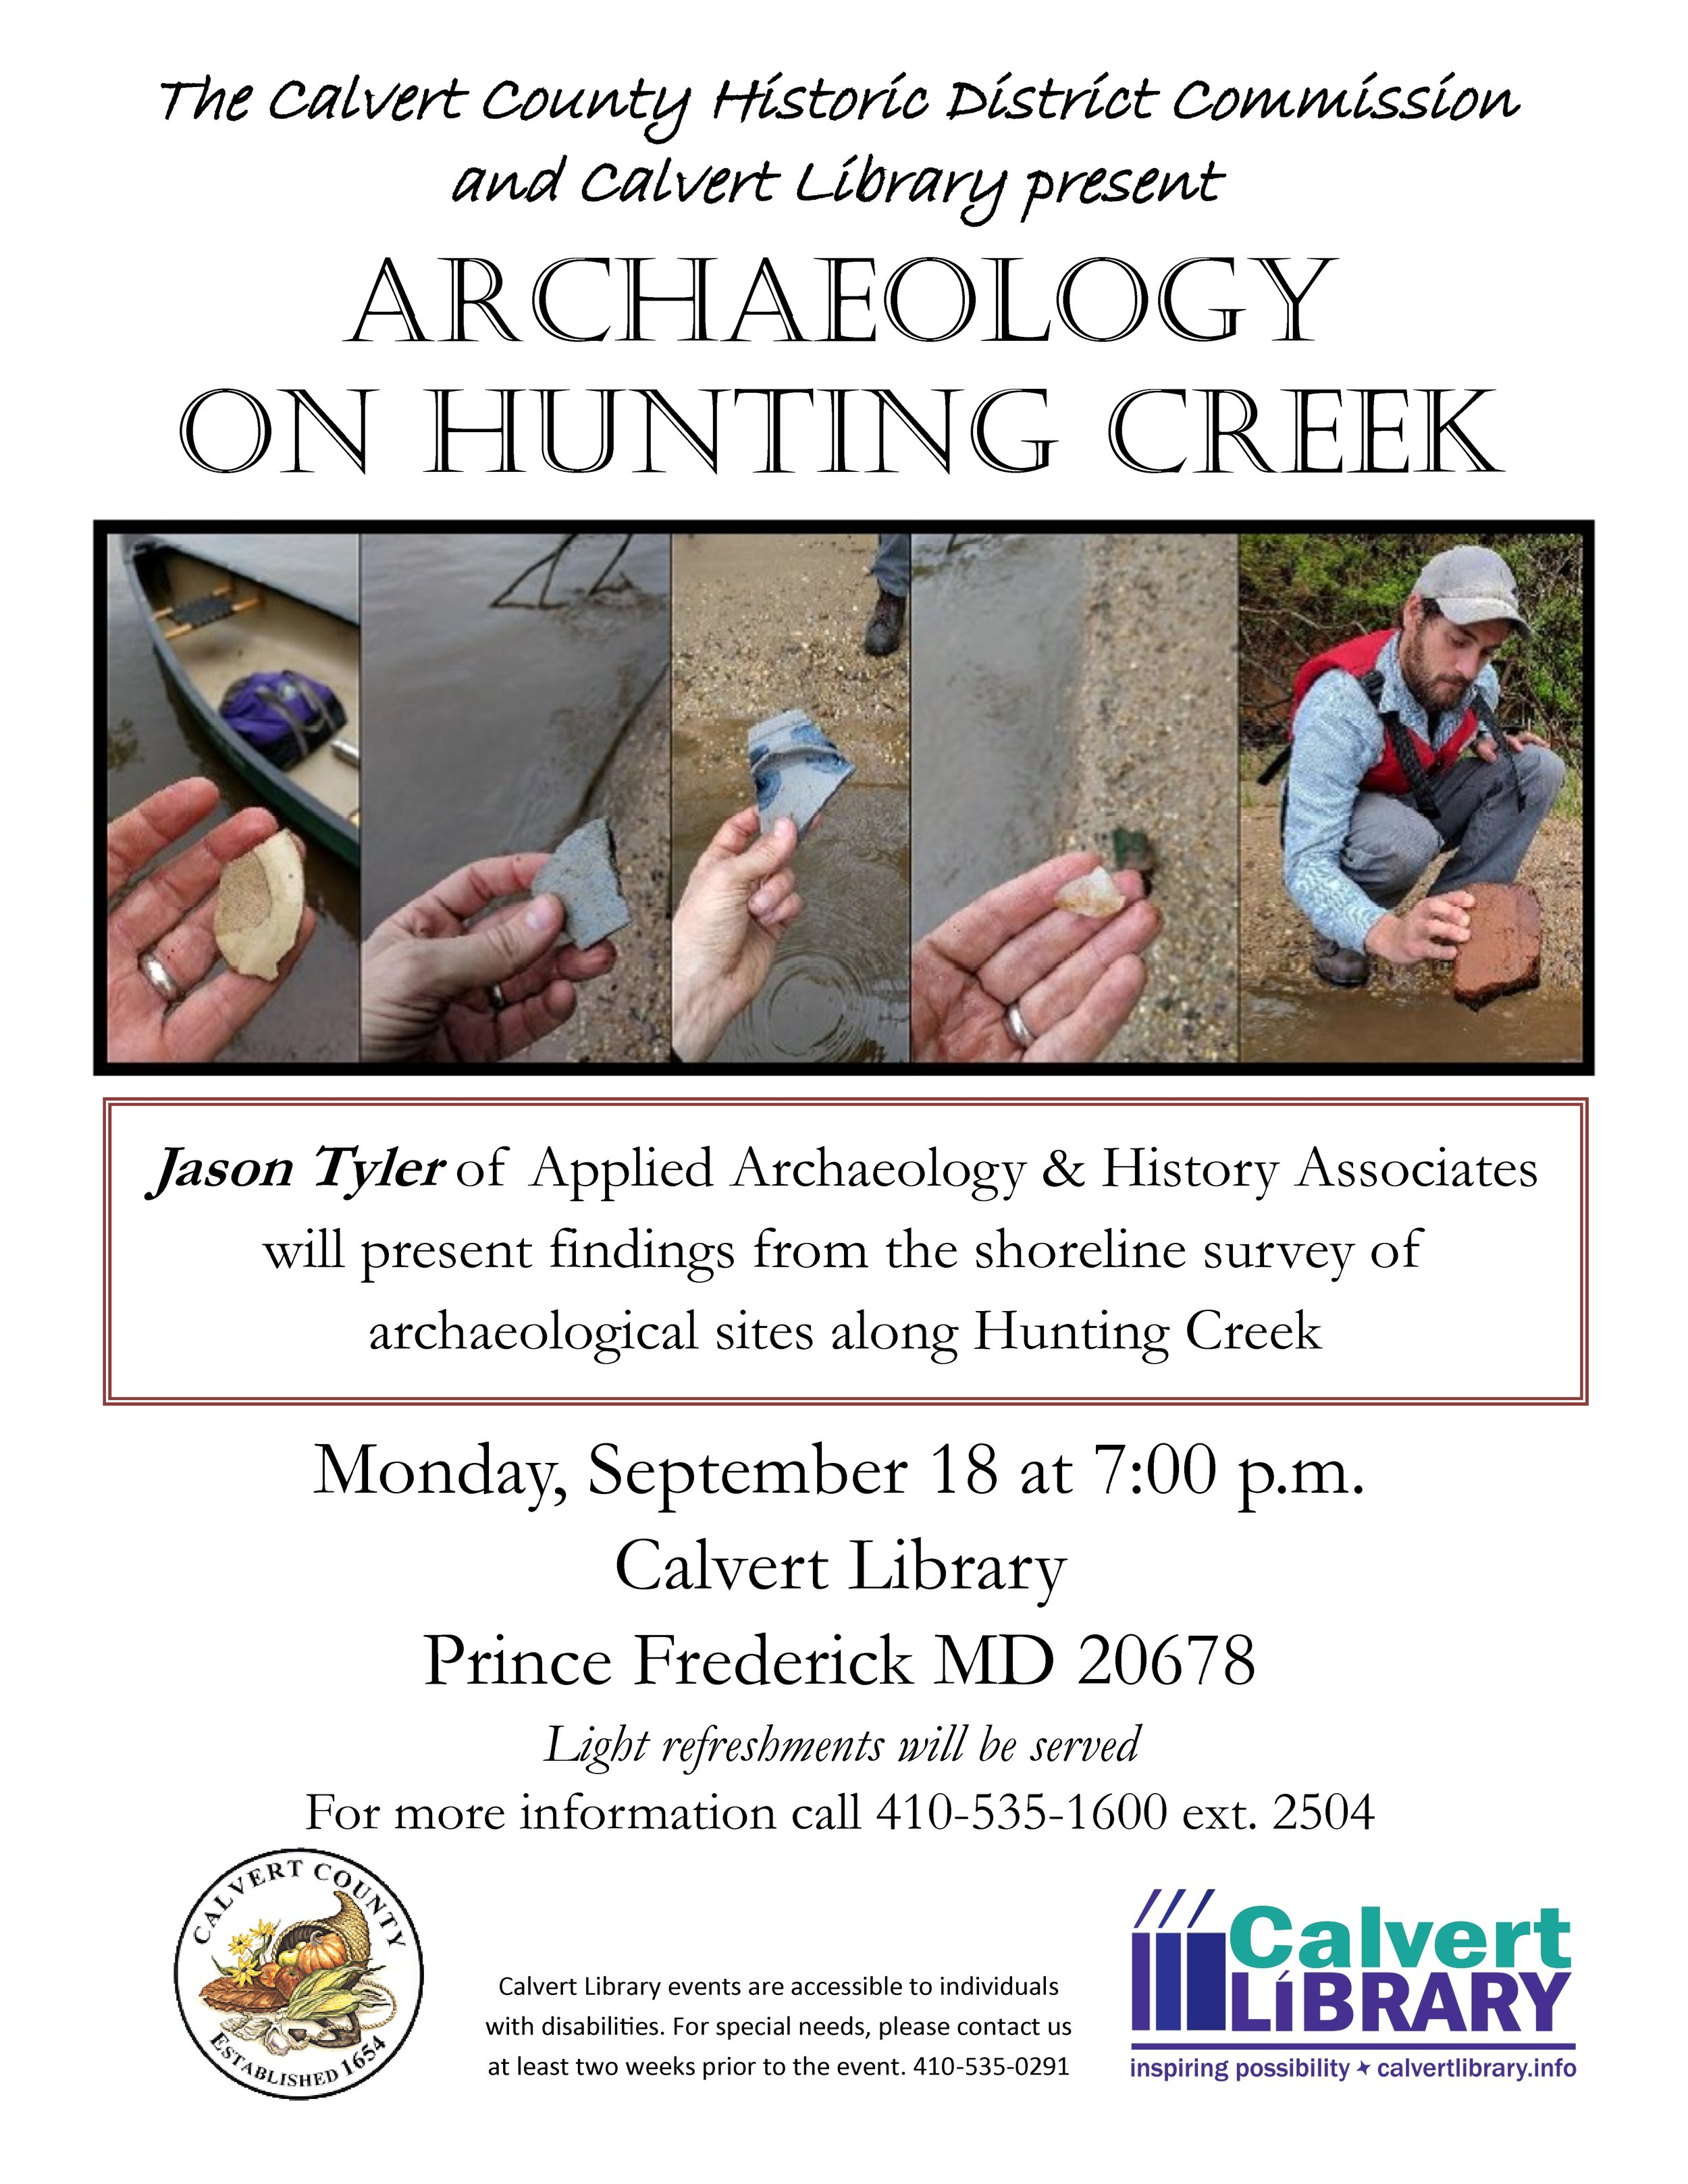 ArchaeologyHuntingCreek_Flyer_final presentation calvert county library 2017 september.jpg